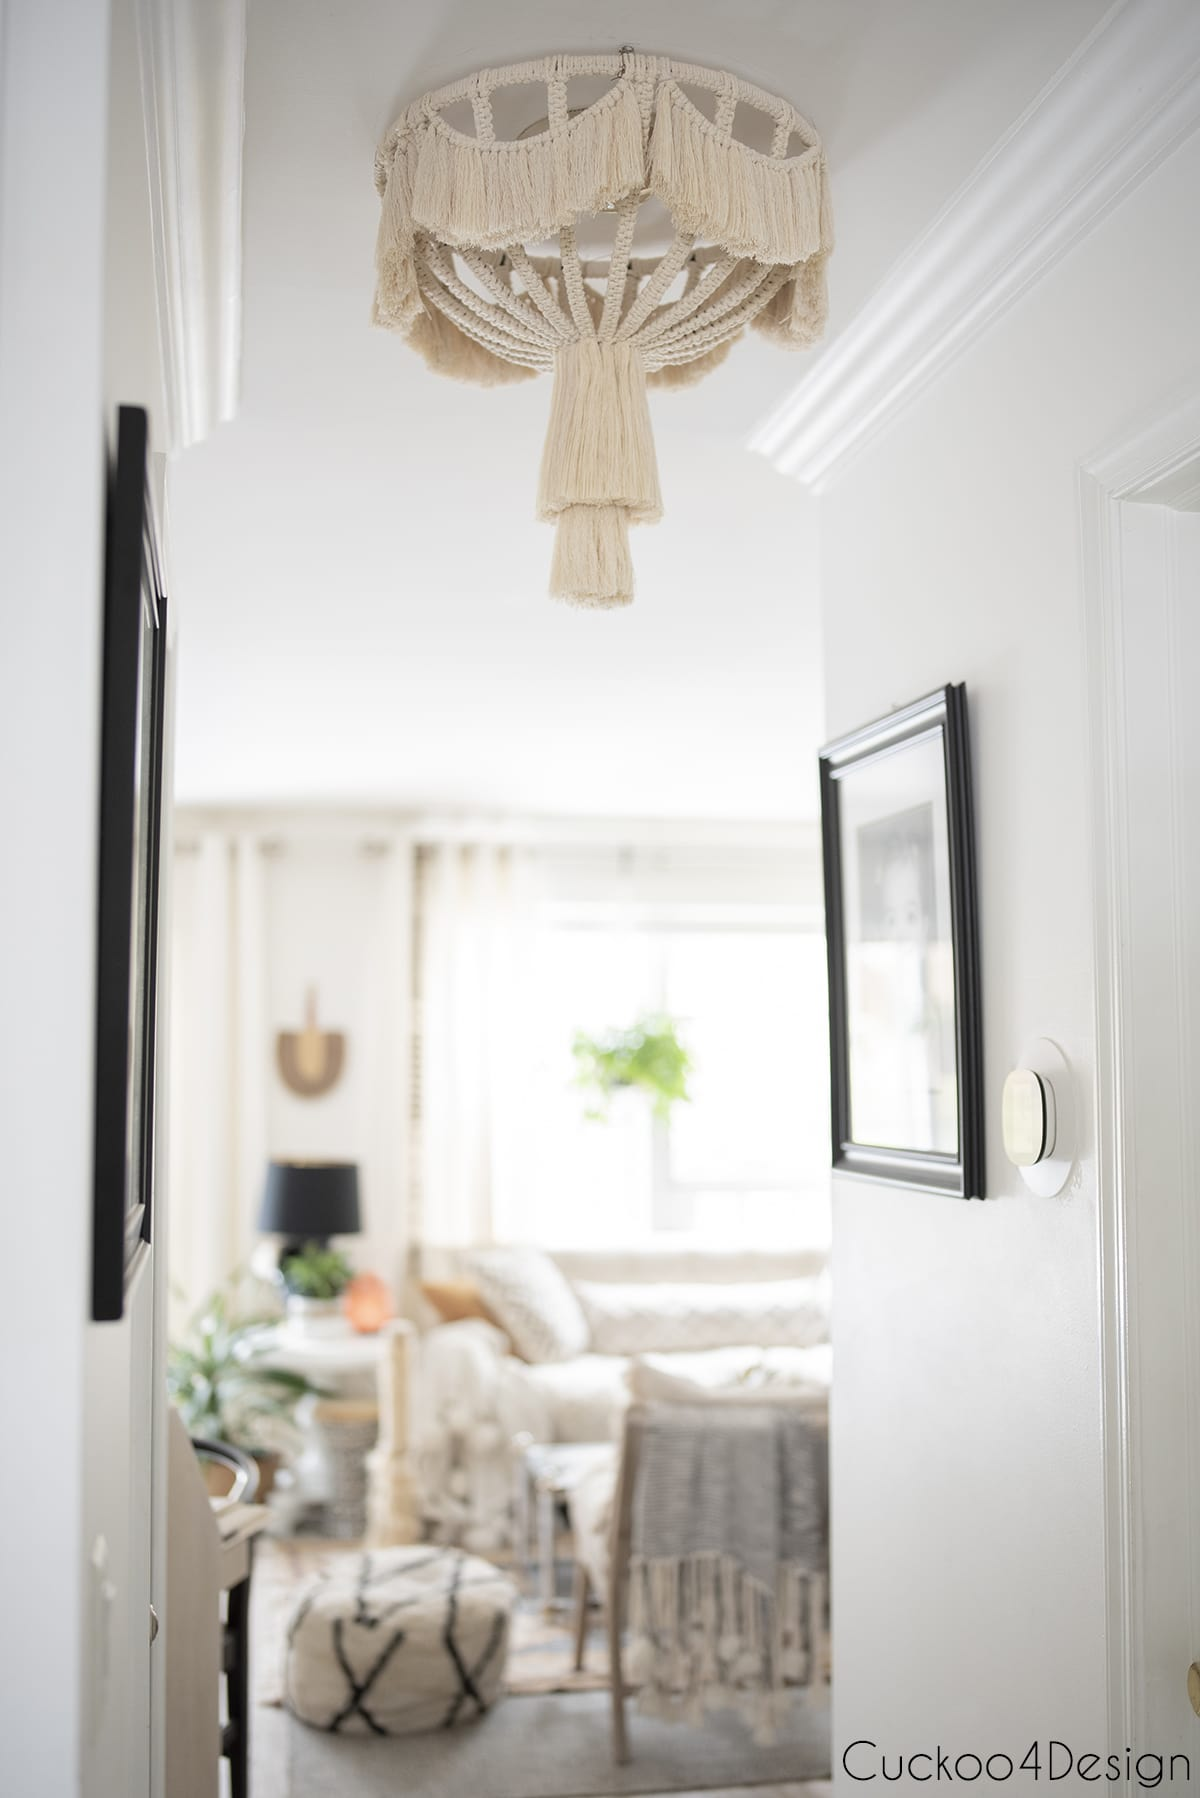 view into living room with finished macrame light fixture